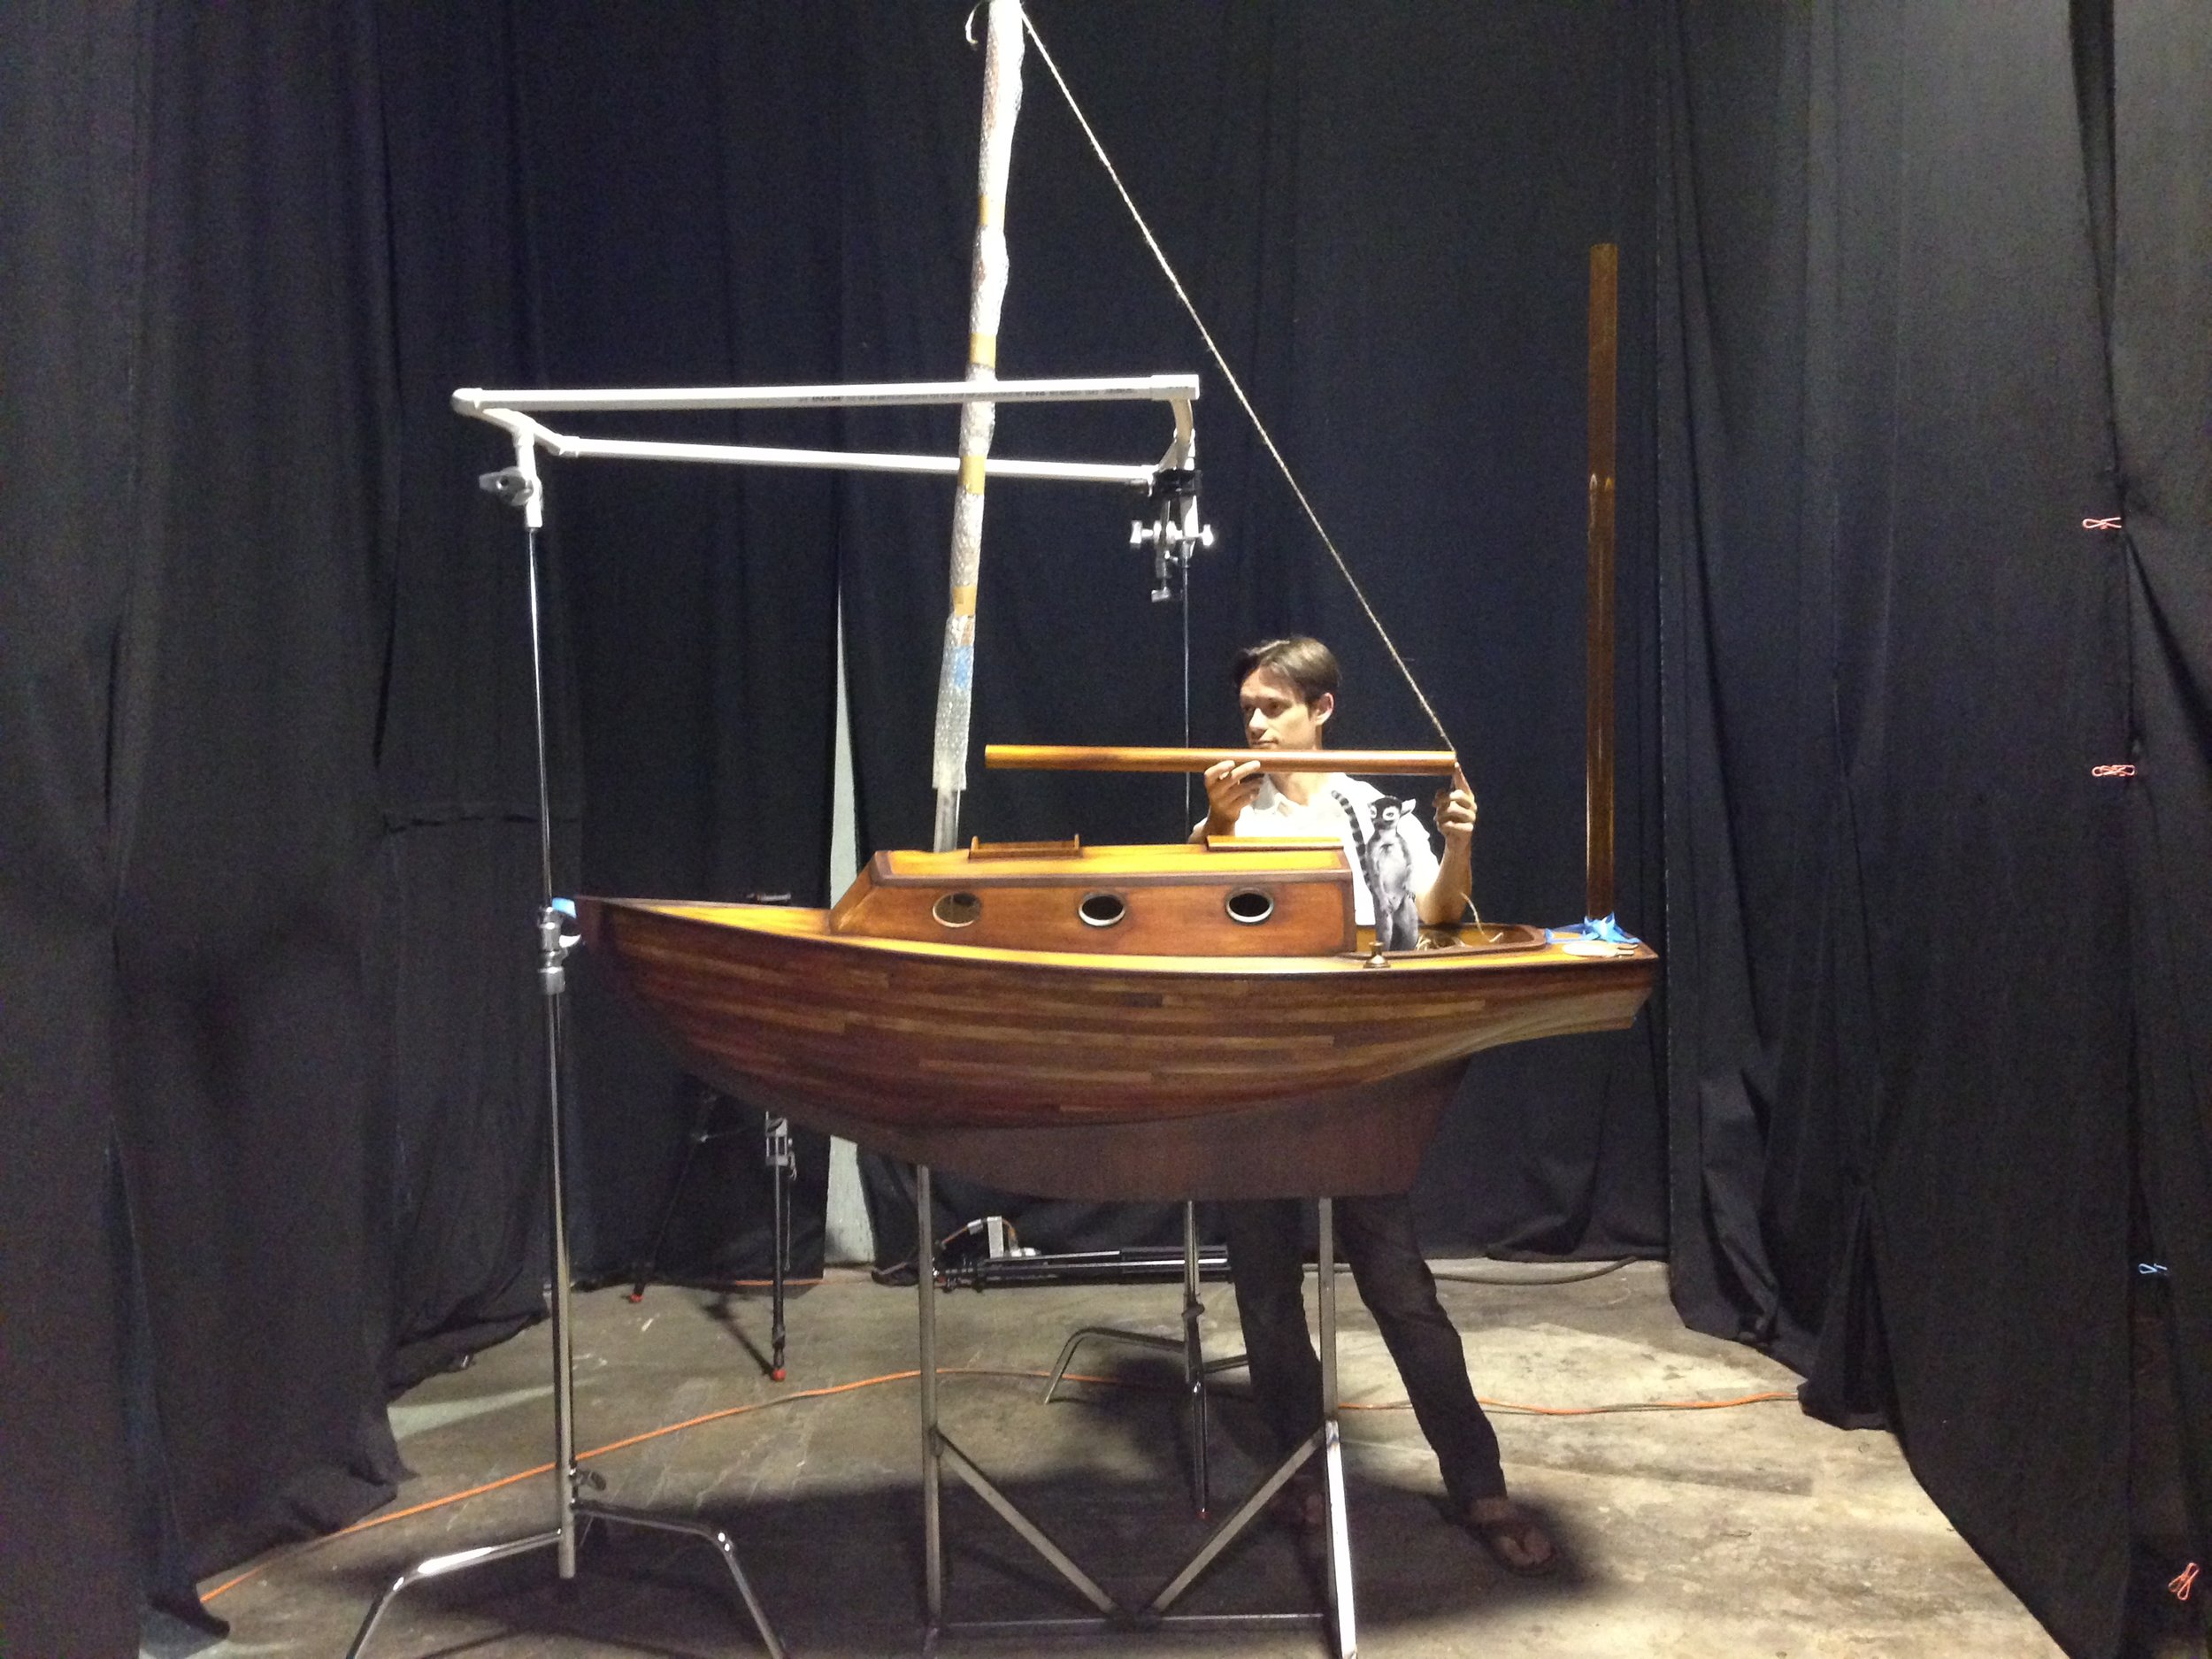 Director of Photography Reijean Heringlake inspecting Bernard's boat with a paper cutout stand-in for Bernard.